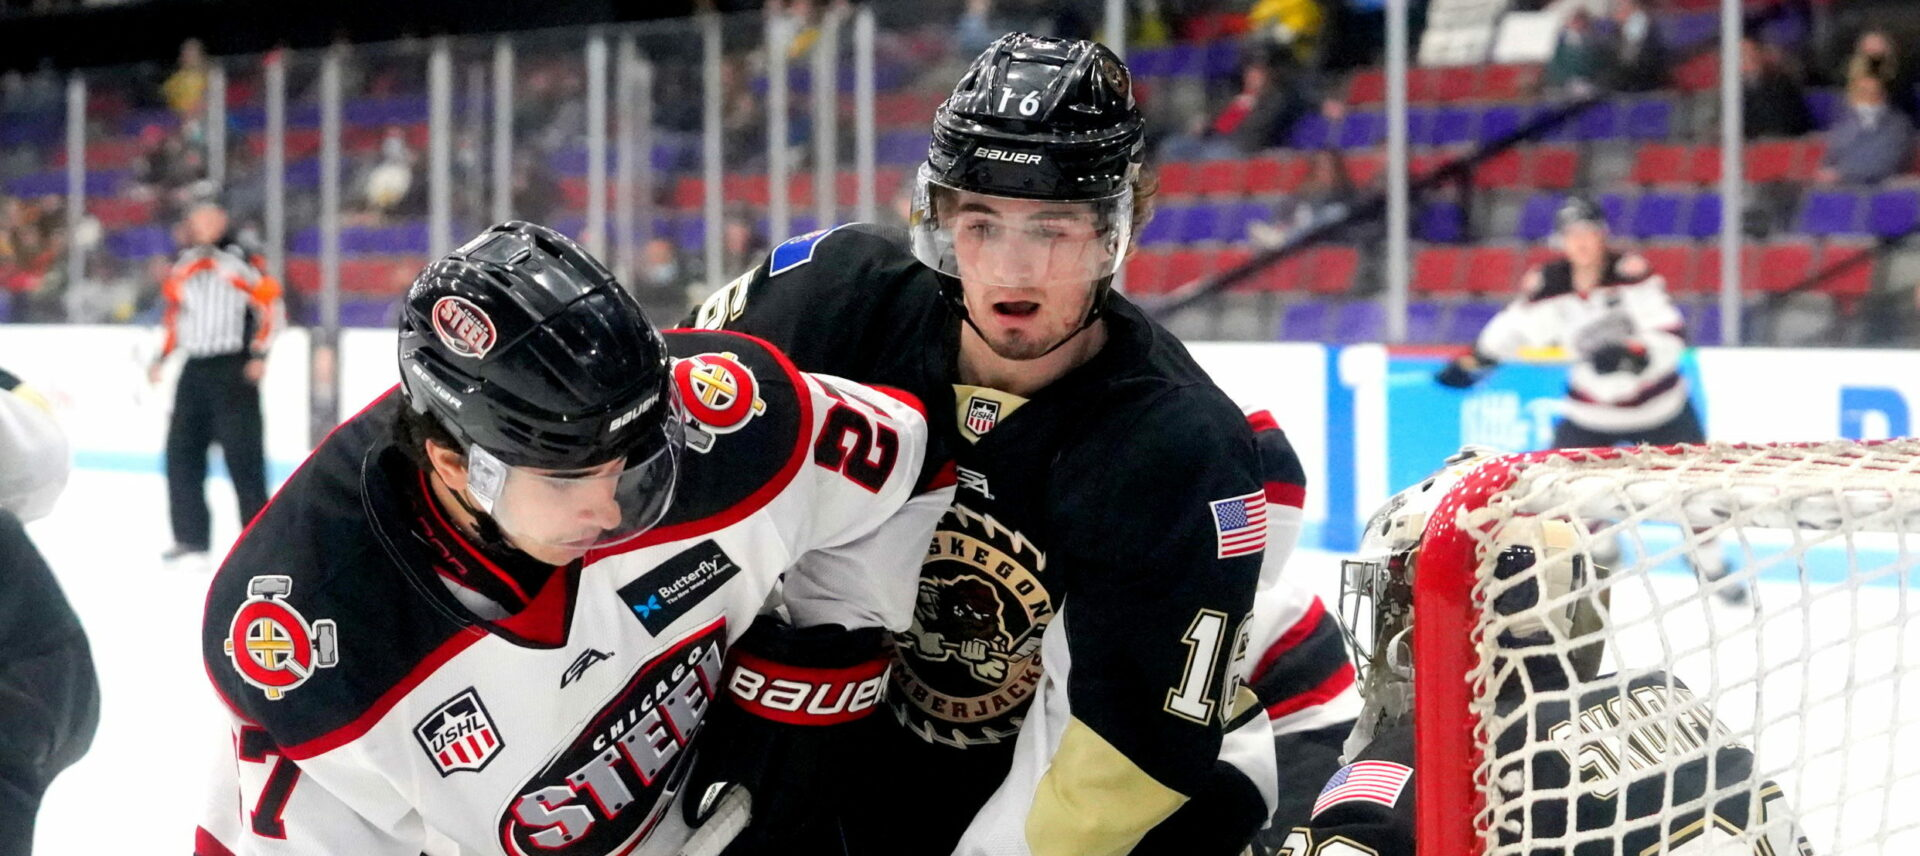 Lumberjacks' season comes to a disappointing end in a heart-stopping 5-4 loss to Chicago in the conference finals